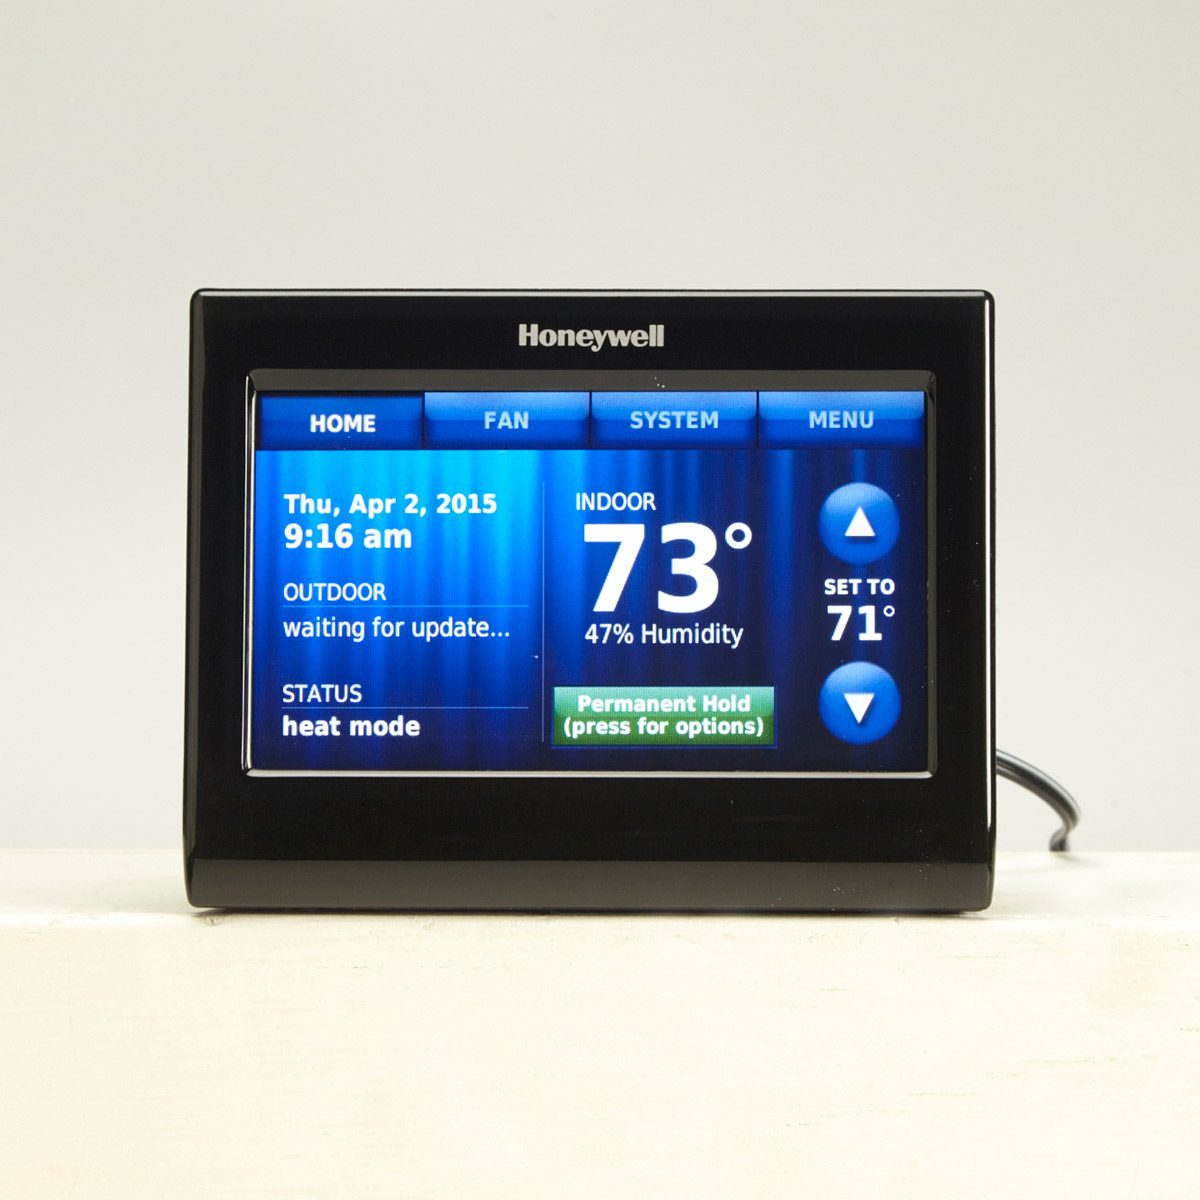 Better Temperature Visibility and Controls